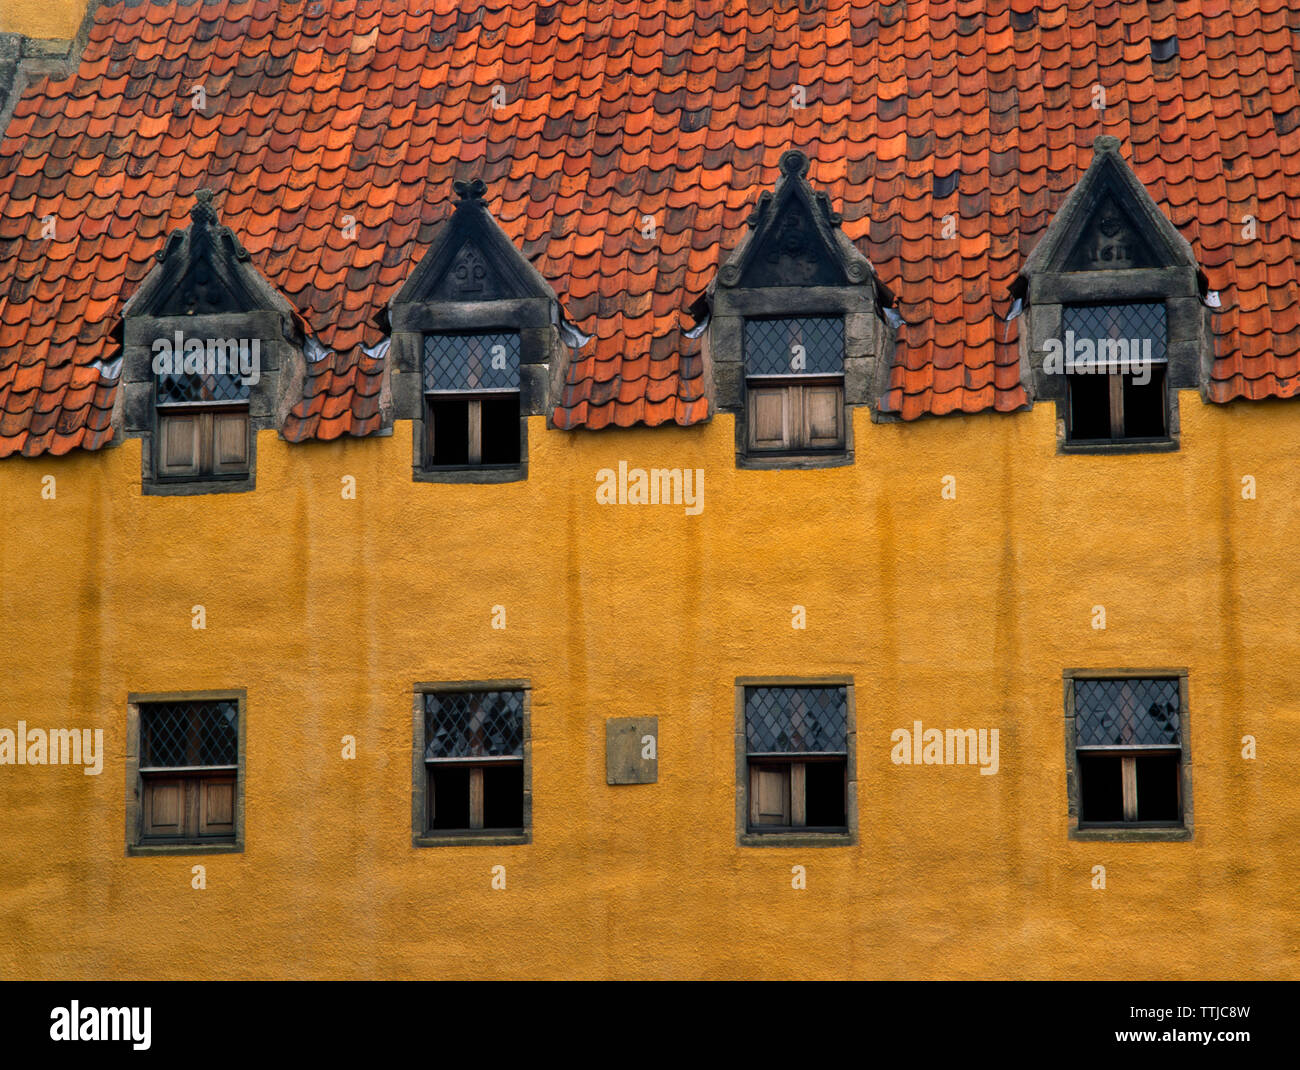 Detail view NNE of harled & painted stonework, upper windows & pantile roof of the detached N range of Culross Elizabethan Palace, Fife, Scotland, UK. - Stock Image